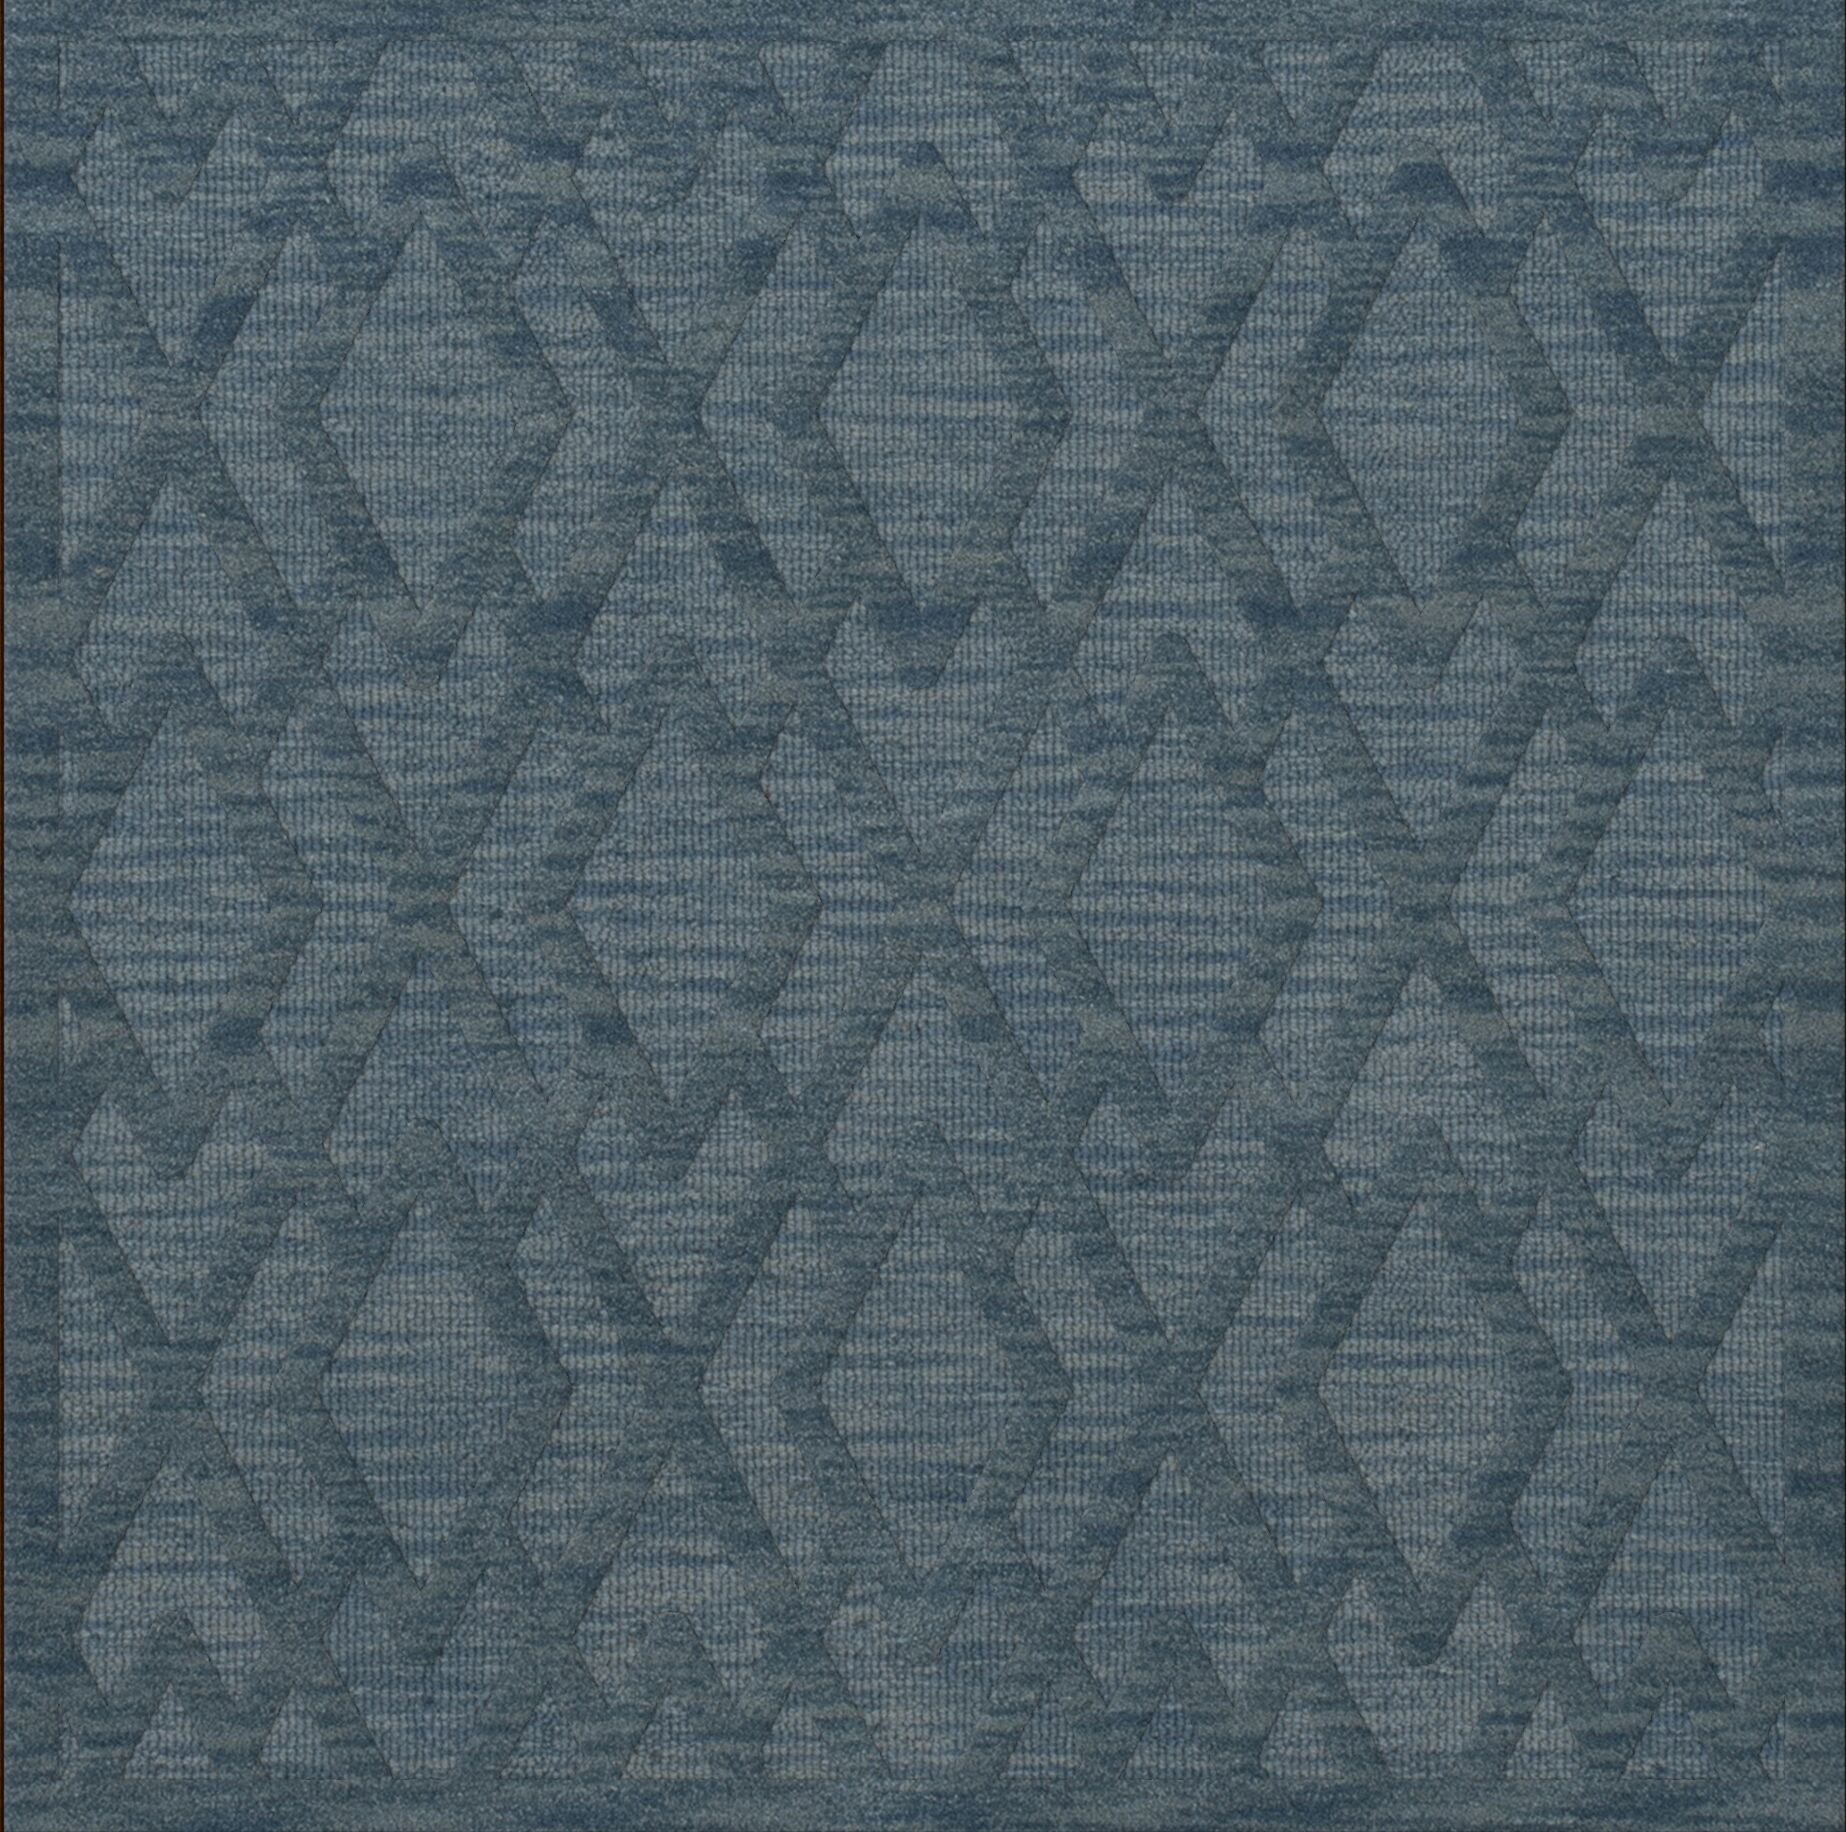 Dover Tufted Wool Sky Area Rug Rug Size: Square 10'